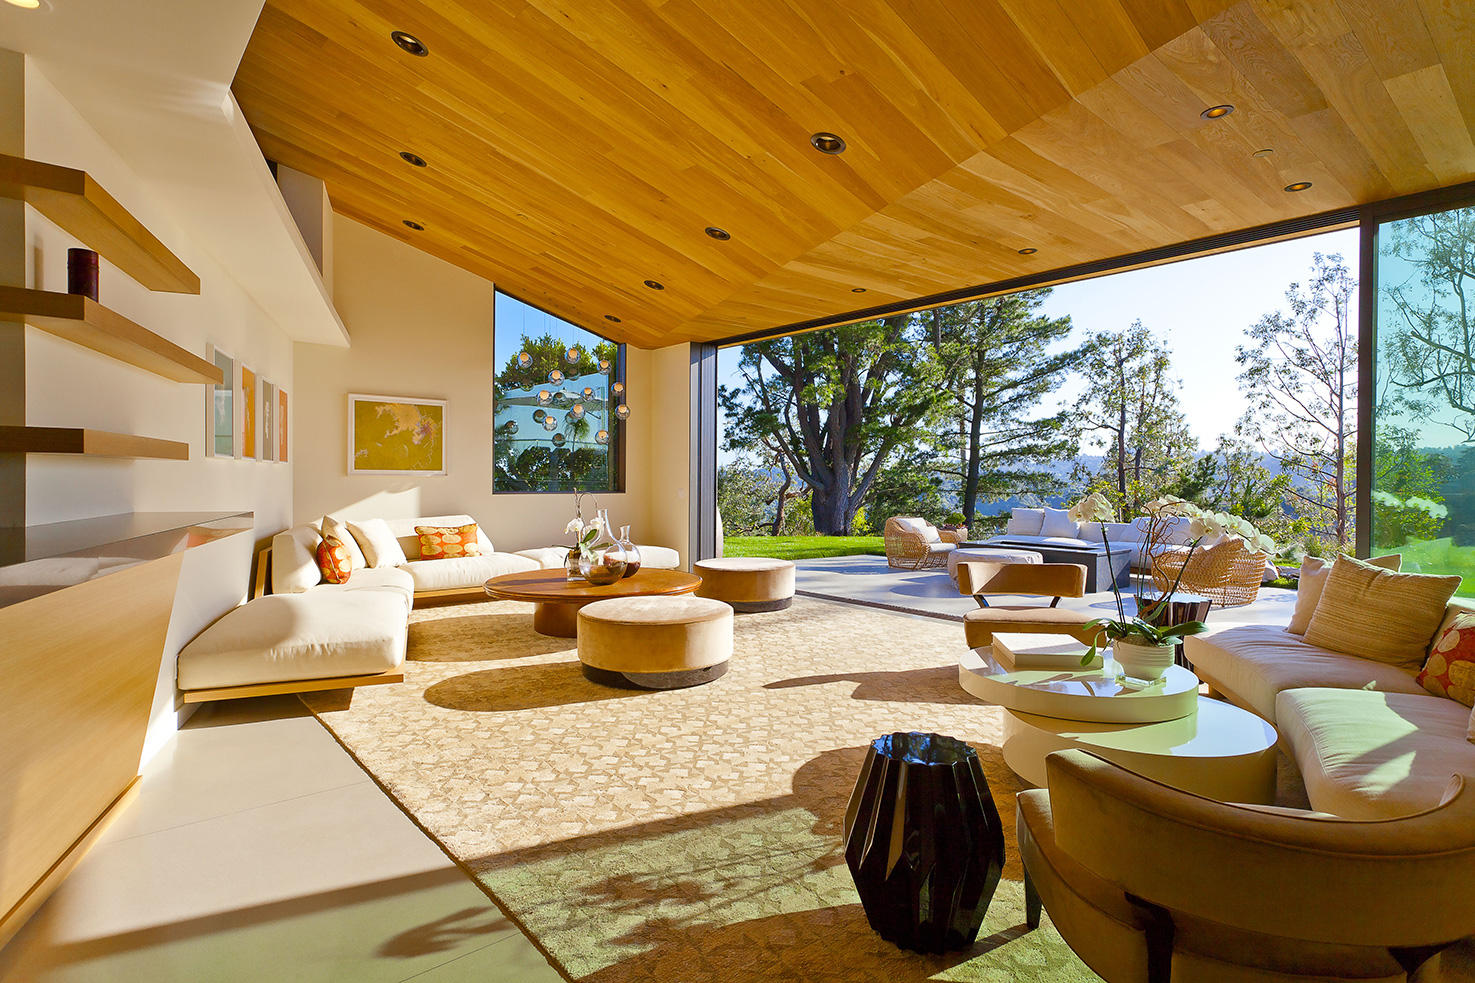 Paulcrest Residence by Soler Architecture and Design